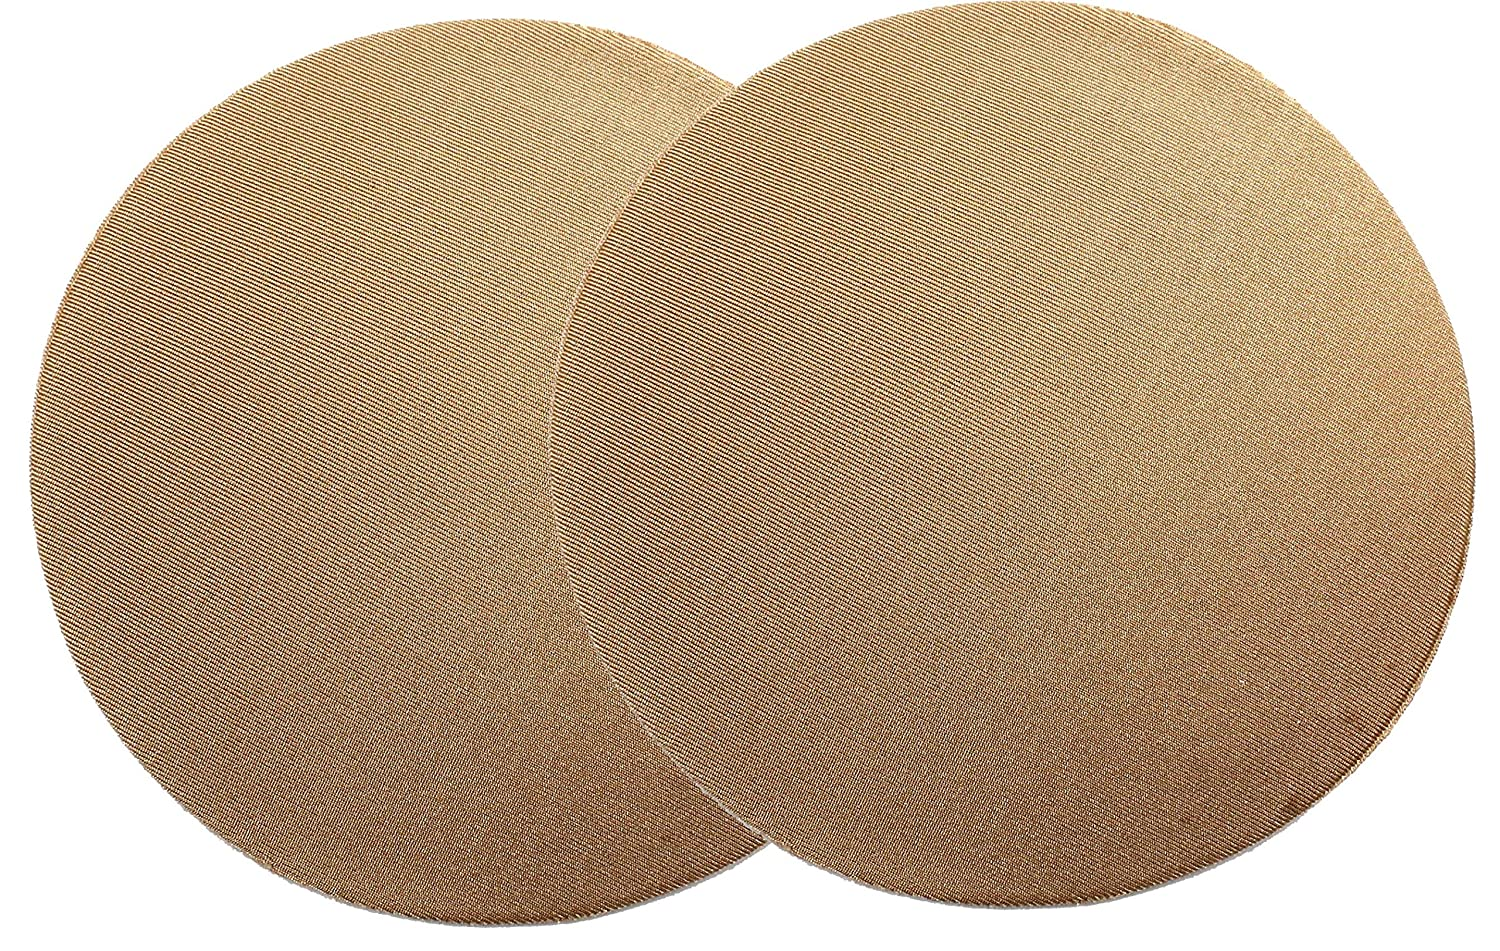 Sweatproof and Water Resistant Nipple Covers - Nylon Reusable Adhesive Pasties